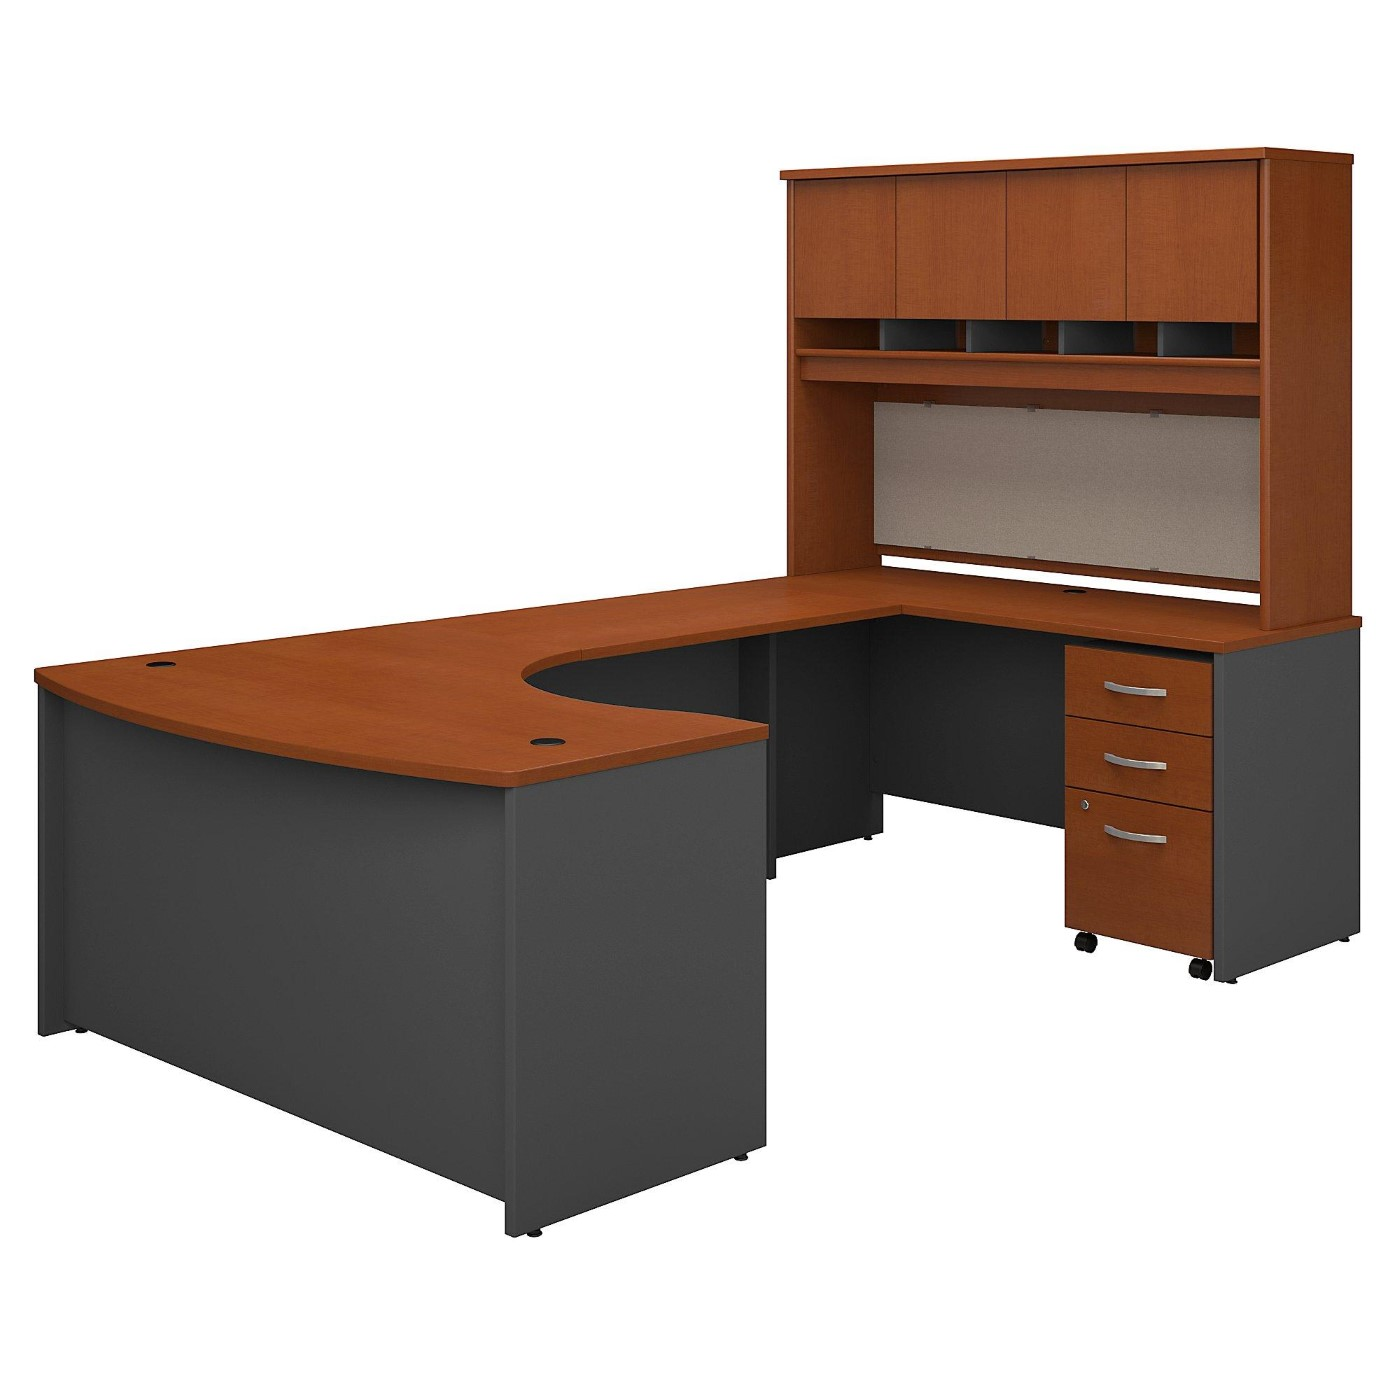 </b></font><b>BUSH BUSINESS FURNITURE SERIES C 60W LEFT HANDED BOW FRONT U SHAPED DESK WITH HUTCH AND STORAGE. FREE SHIPPING</b></font>  VIDEO BELOW. </b></font></b>